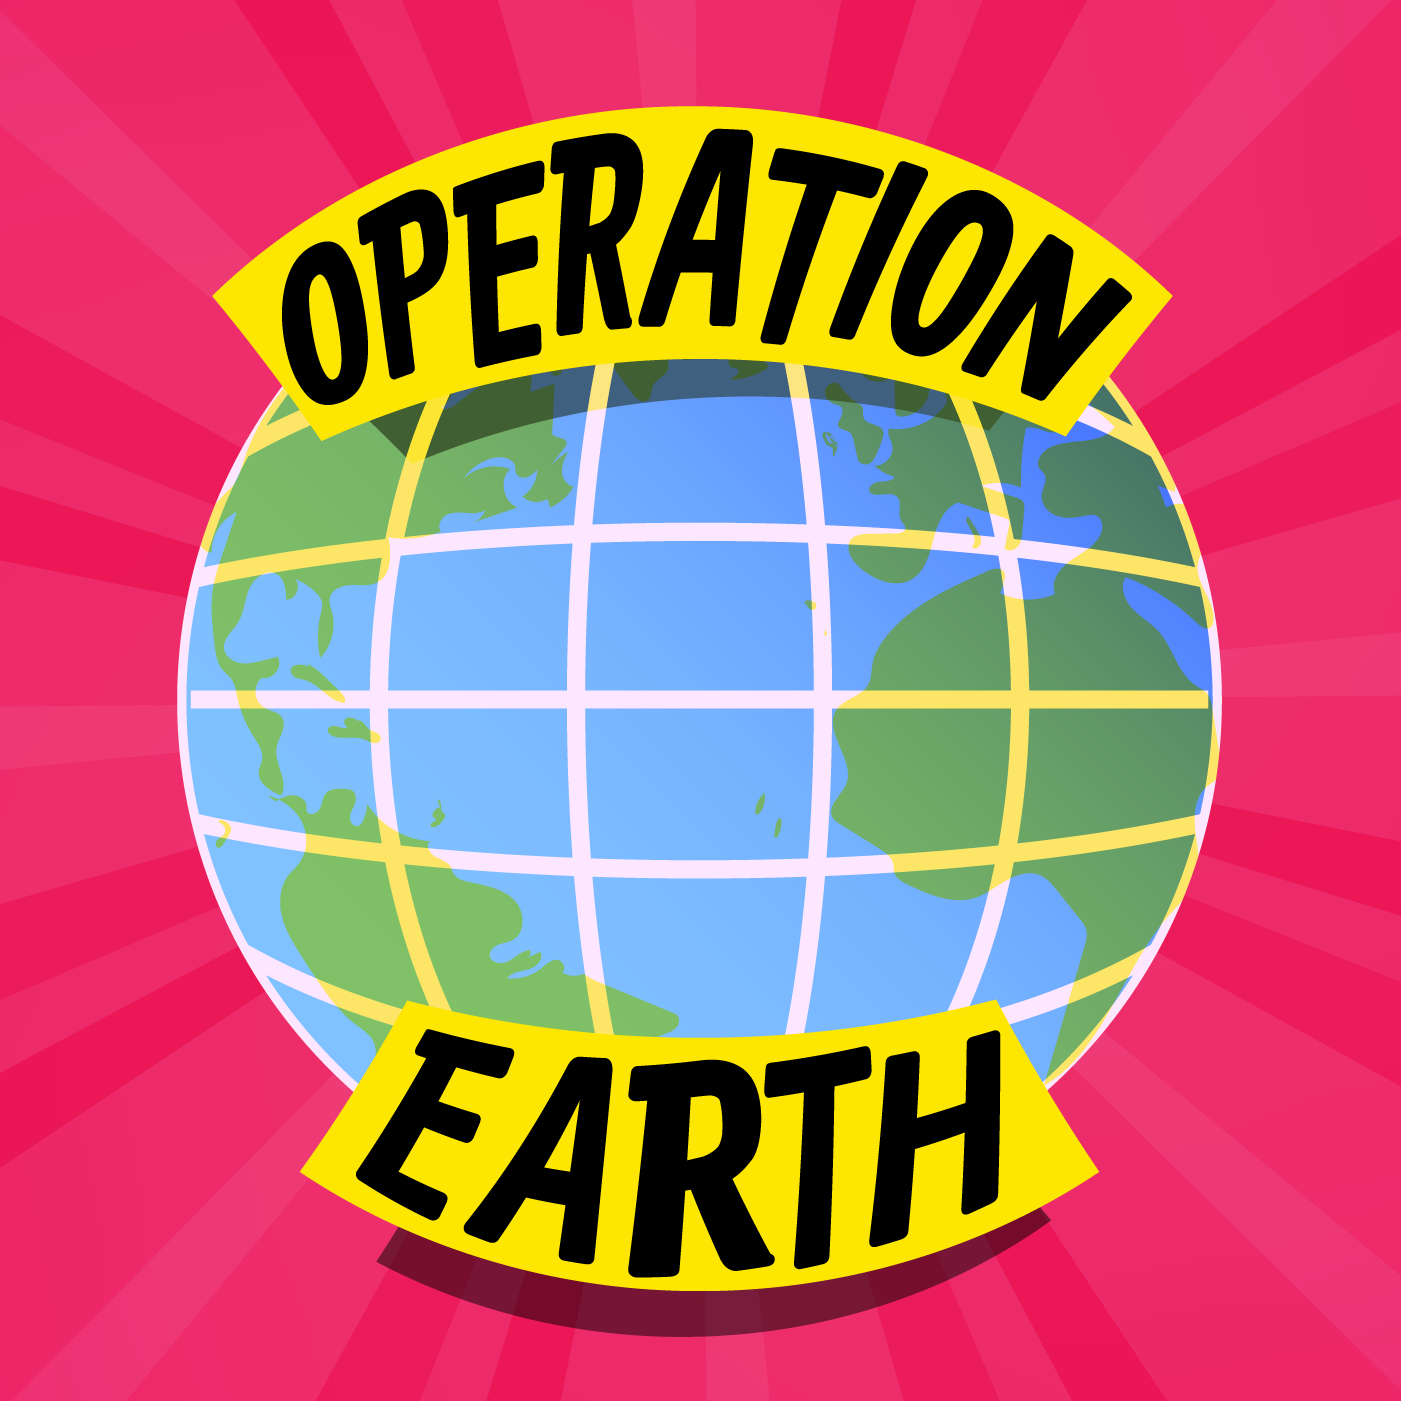 Operation Earth - A comedy podcast about climate change